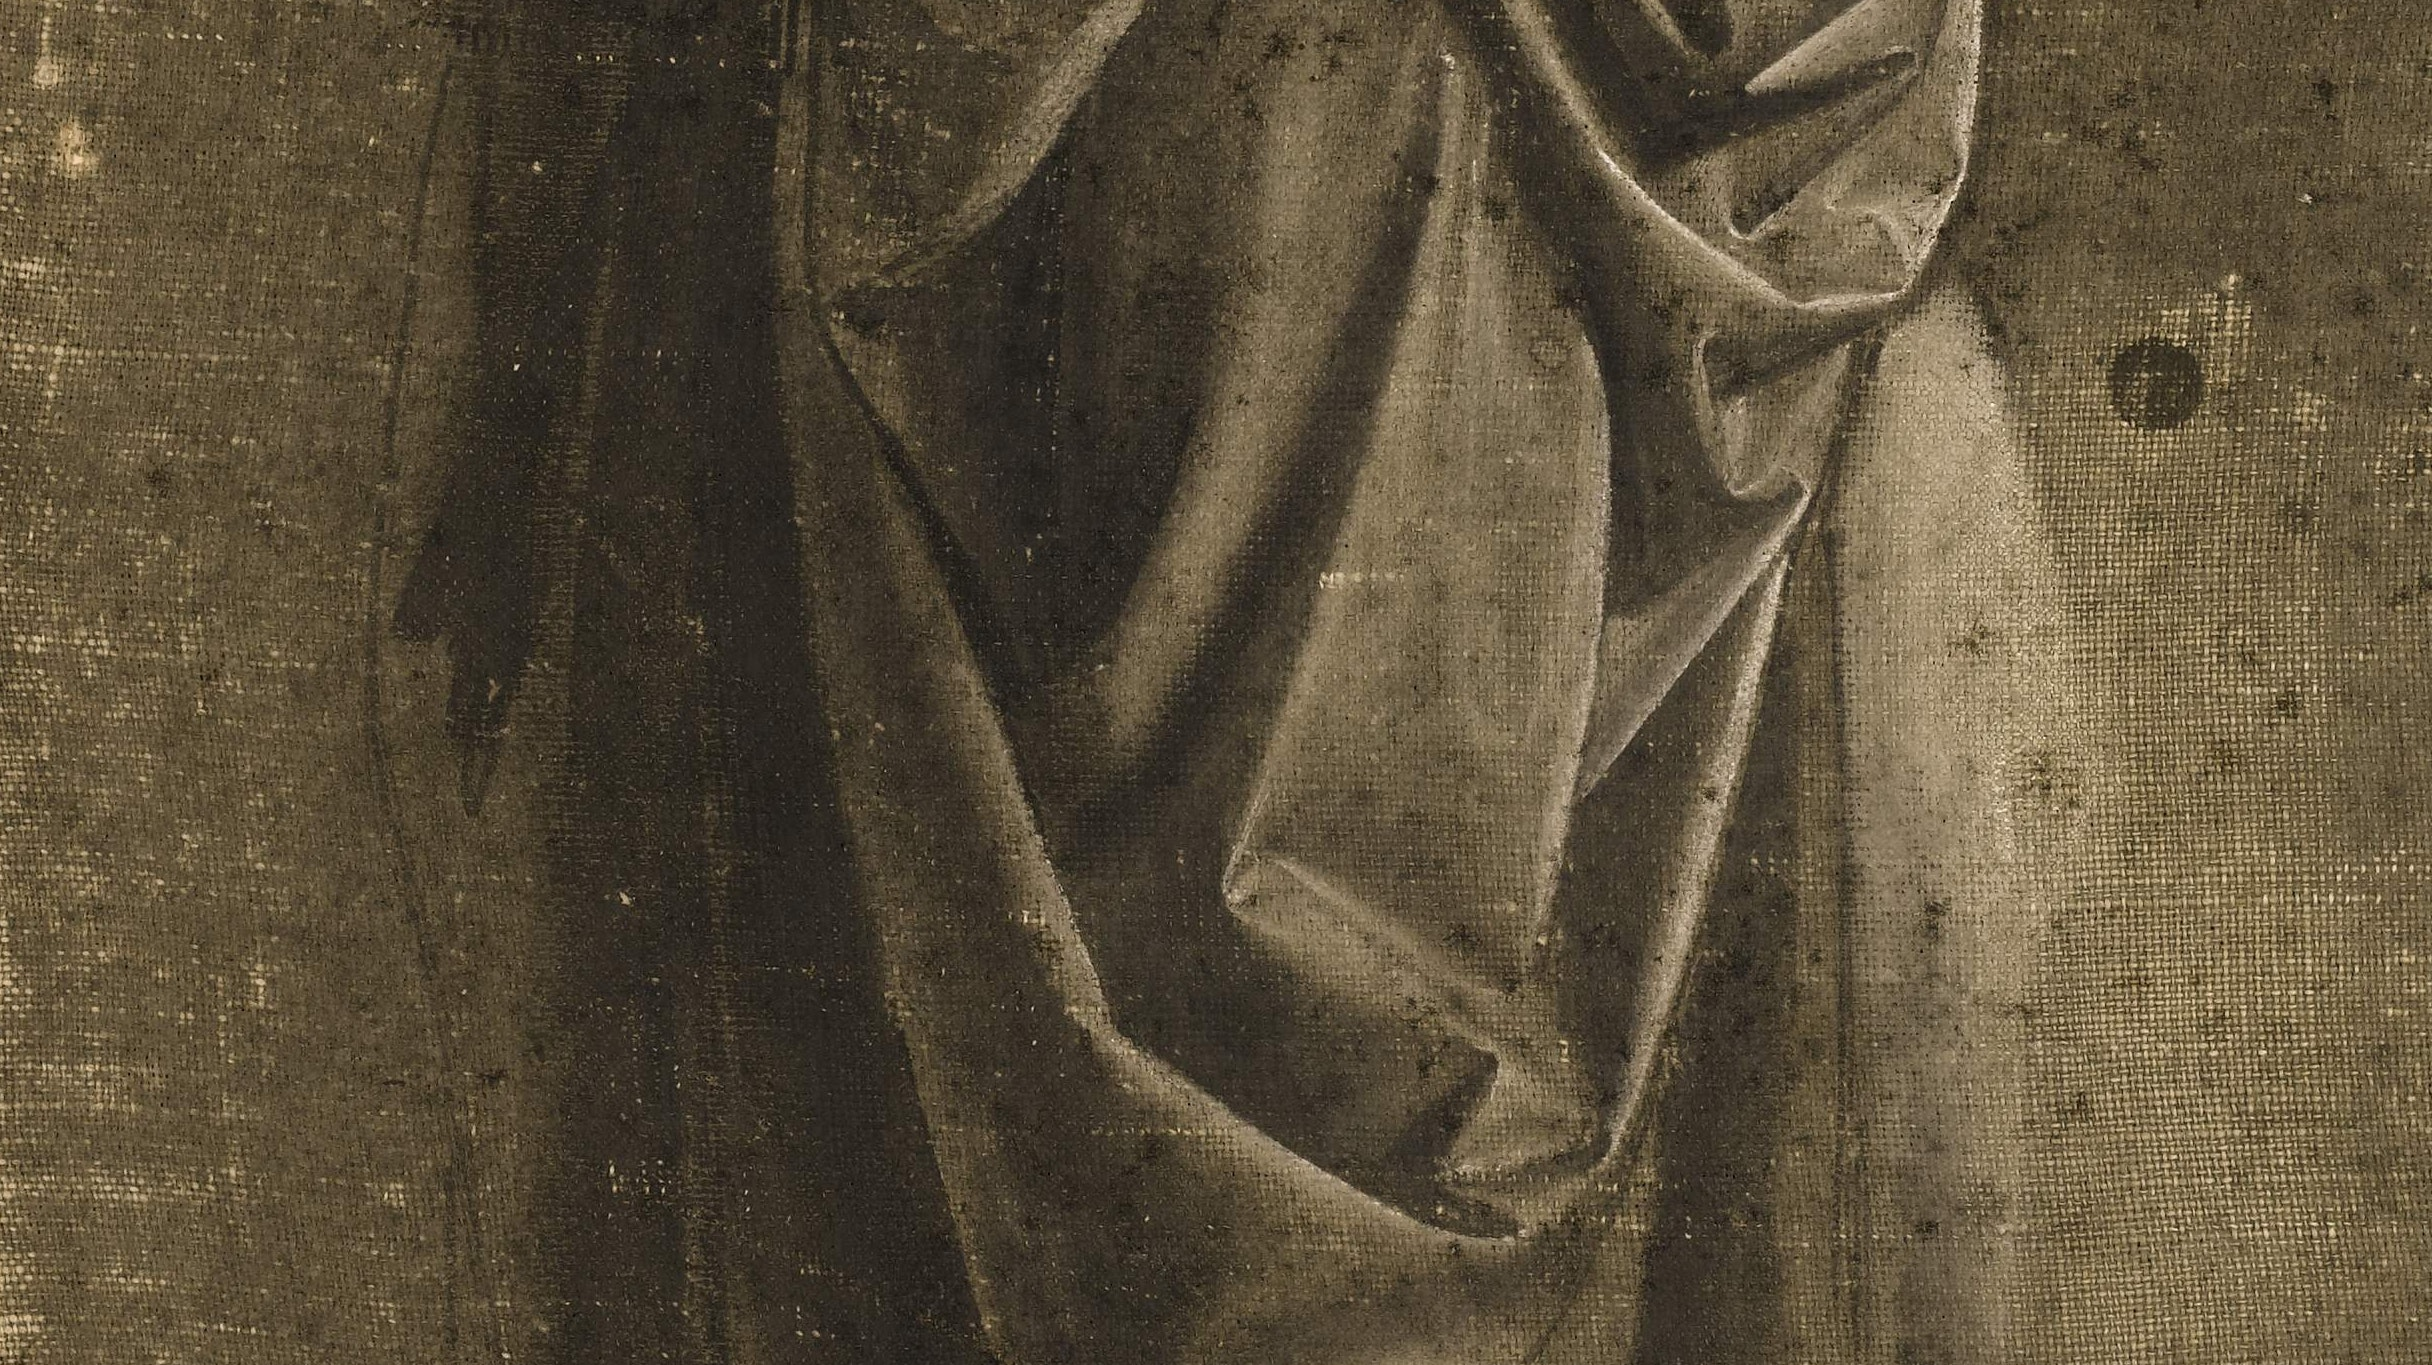 Andrea del Verrocchio's Drapery Study of a Standing Figure Facing Right, in Profile